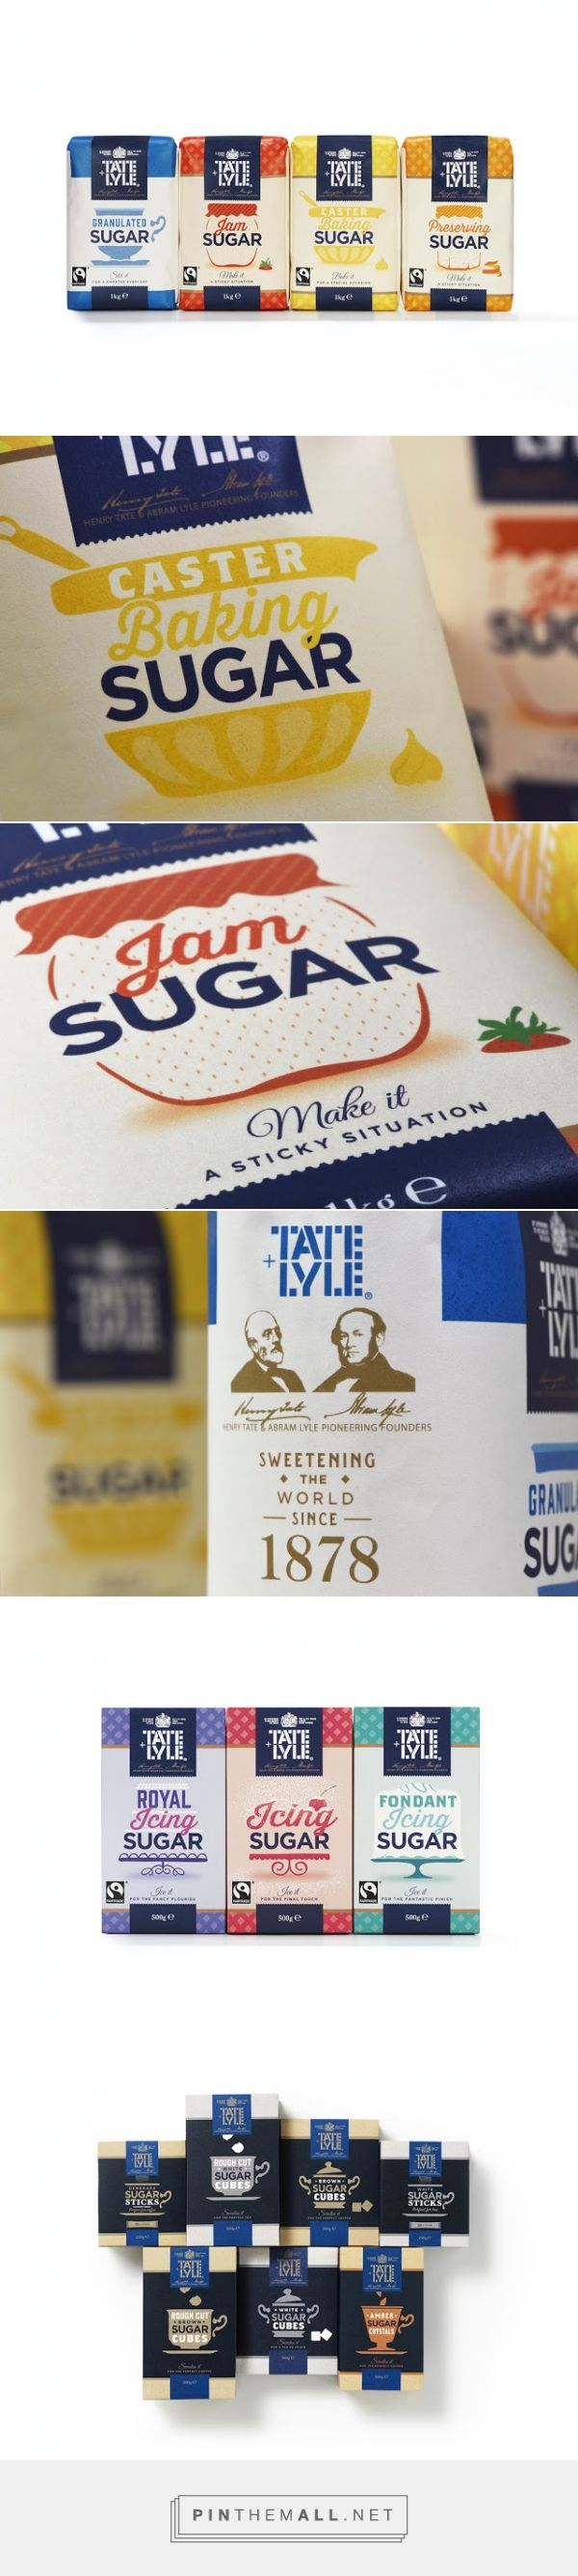 Tate & Lyle's #Sugar #packaging designed by DesignBridge​ - http://www.packagingoftheworld.com/2015/07/tate-lyles-sugar-range-rebrand.html